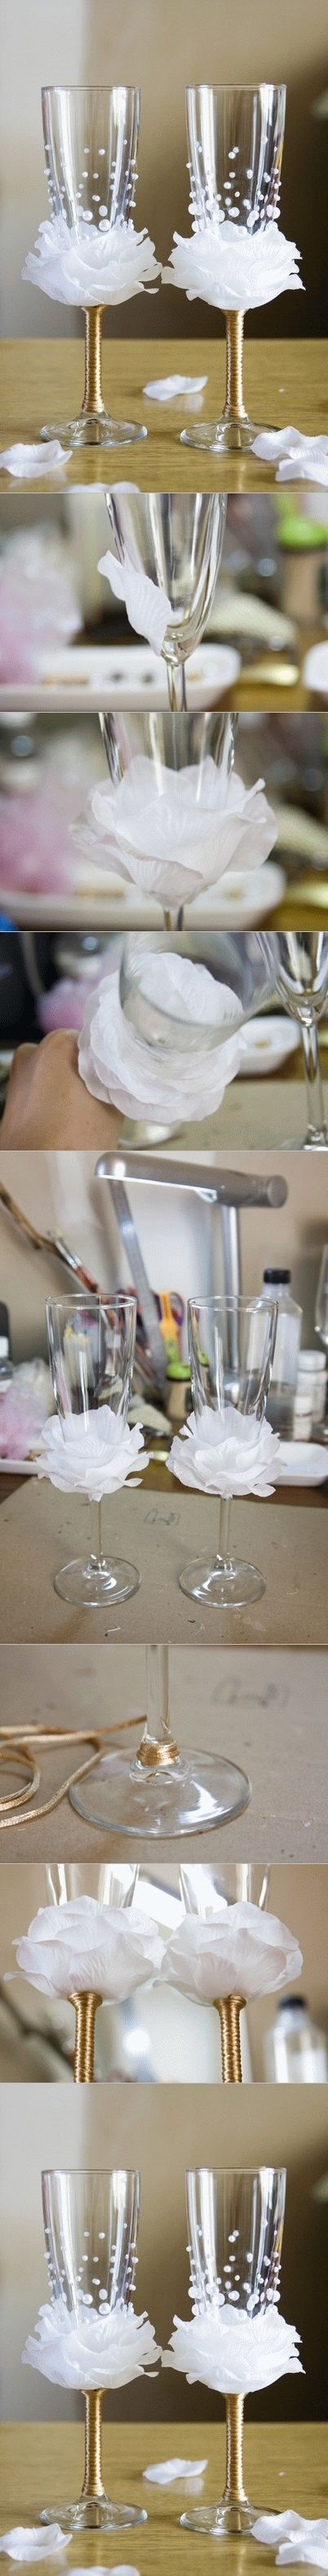 DIY Flower Bead Decorated Wine Glasses. These would be perfect for a wedding…